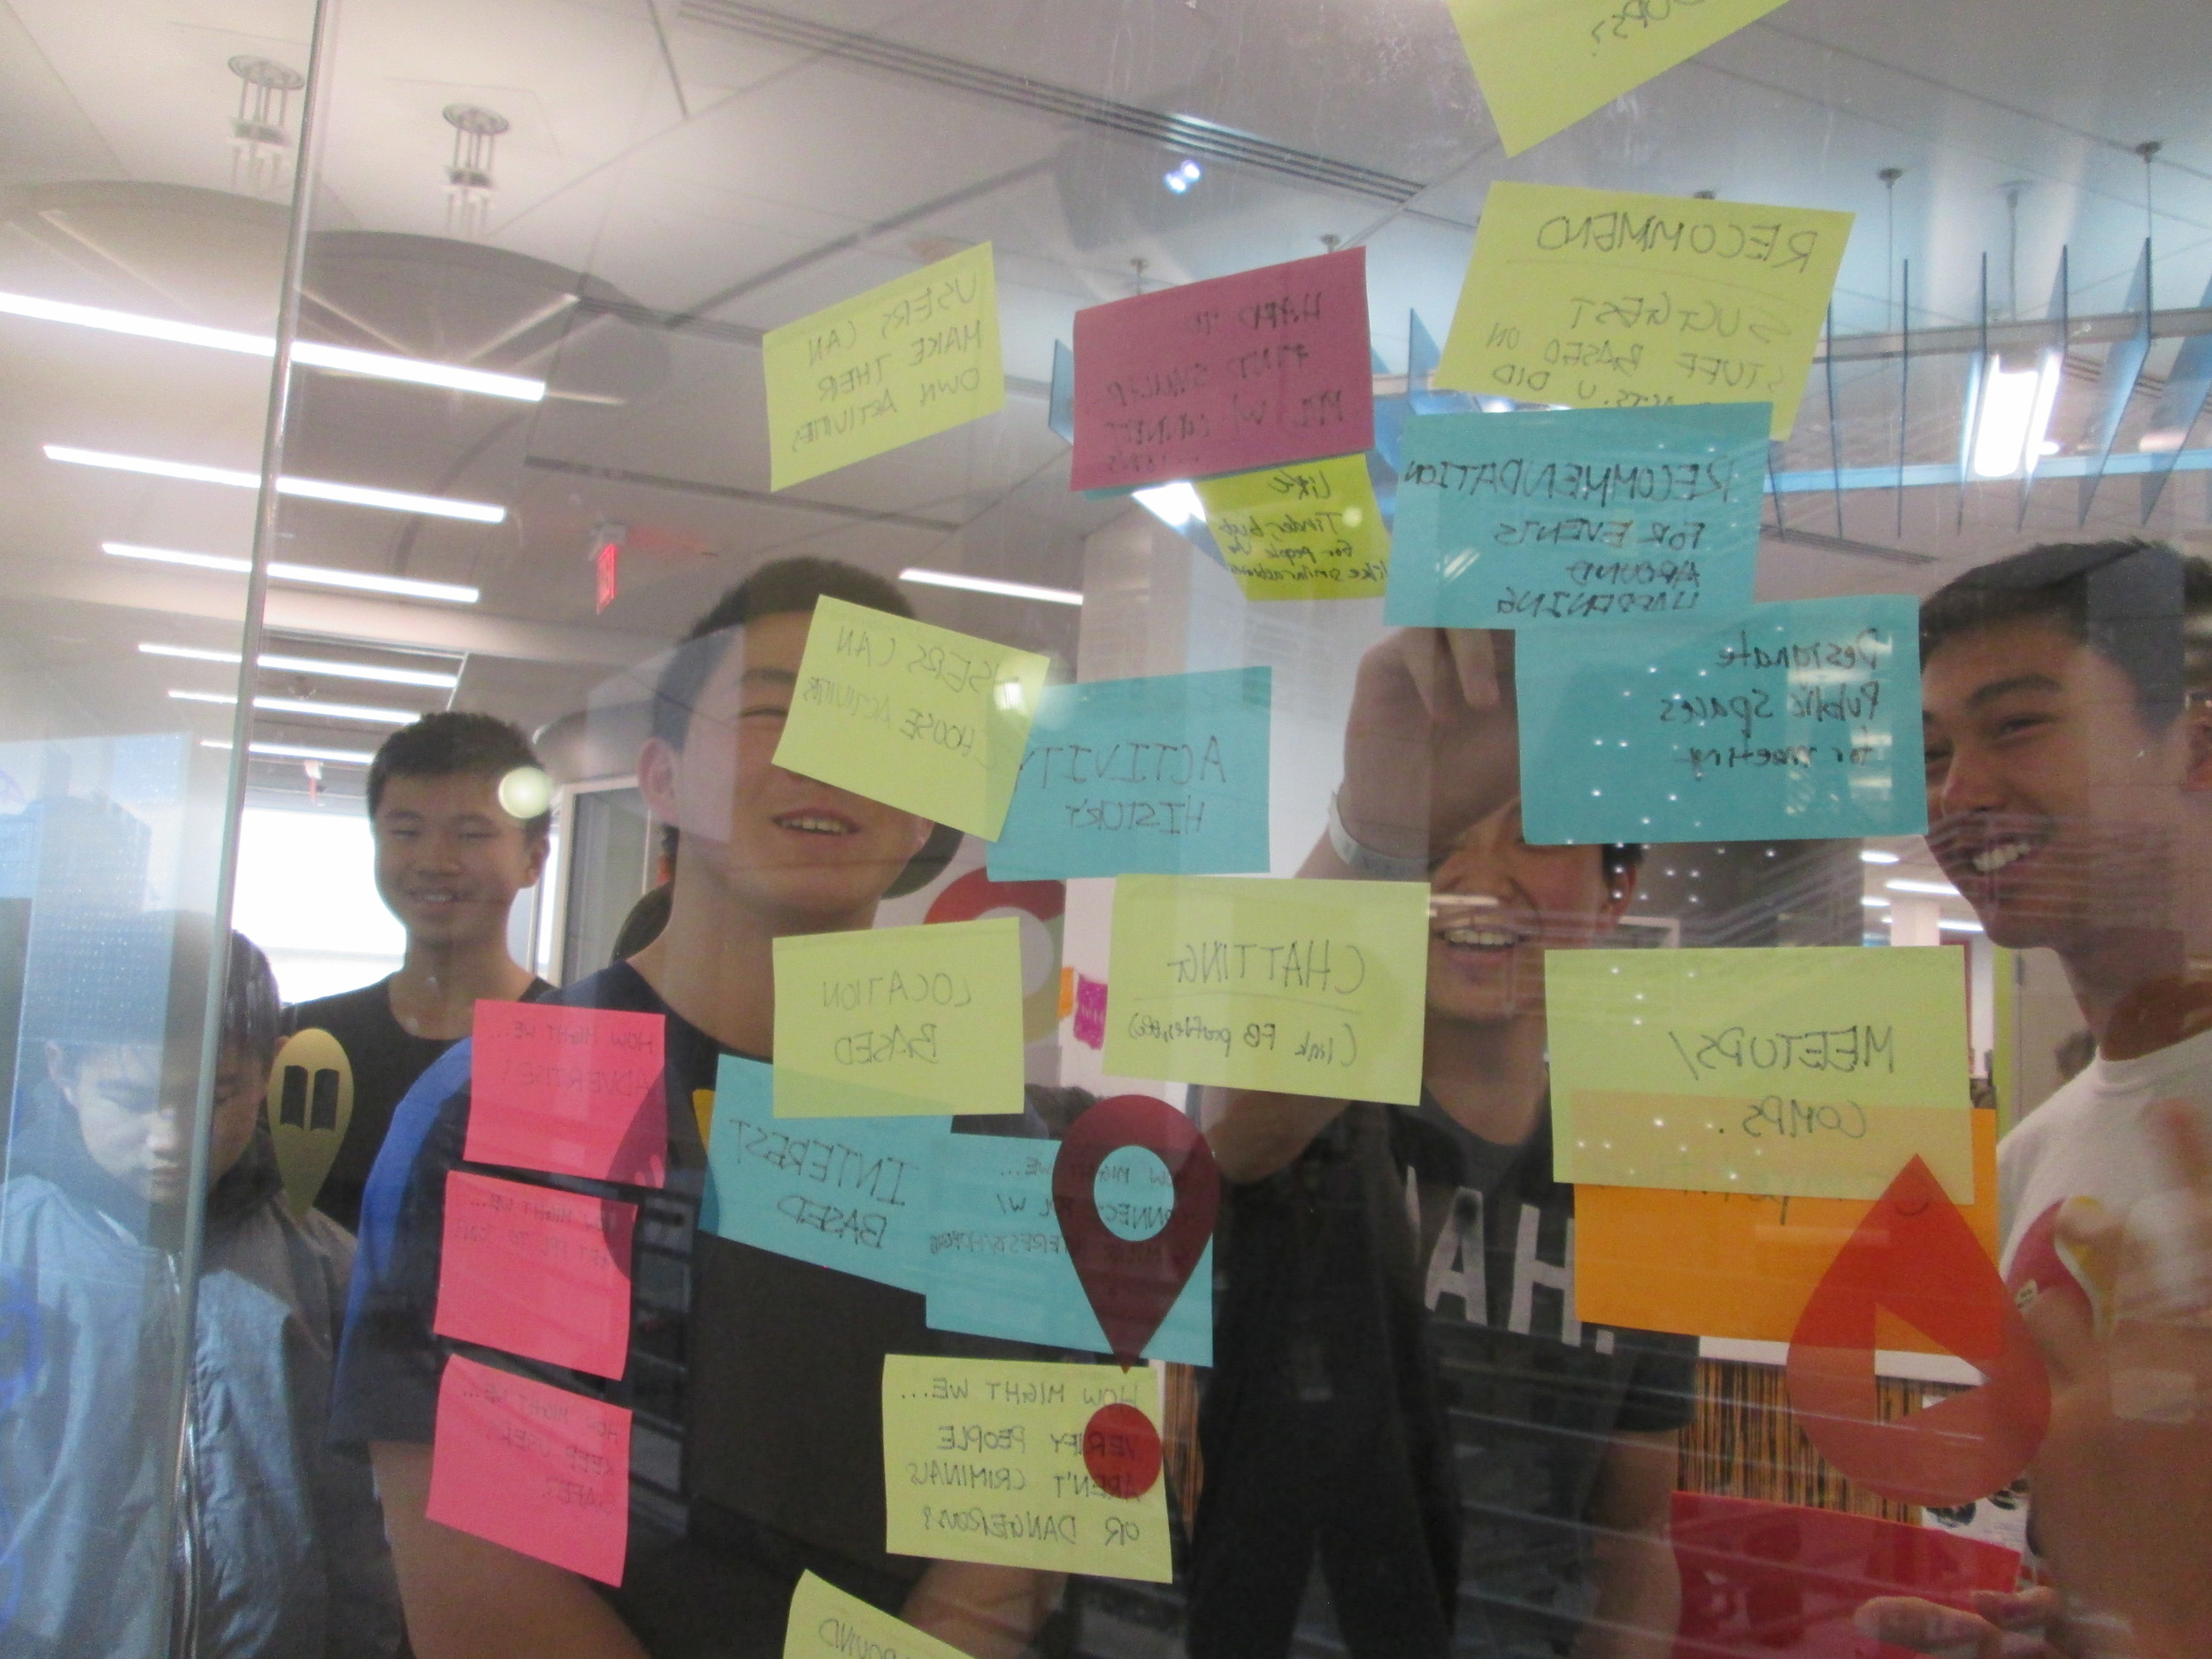 Digital Wall goes Old School: IDEO workshop students using post-its as part of design thinking process